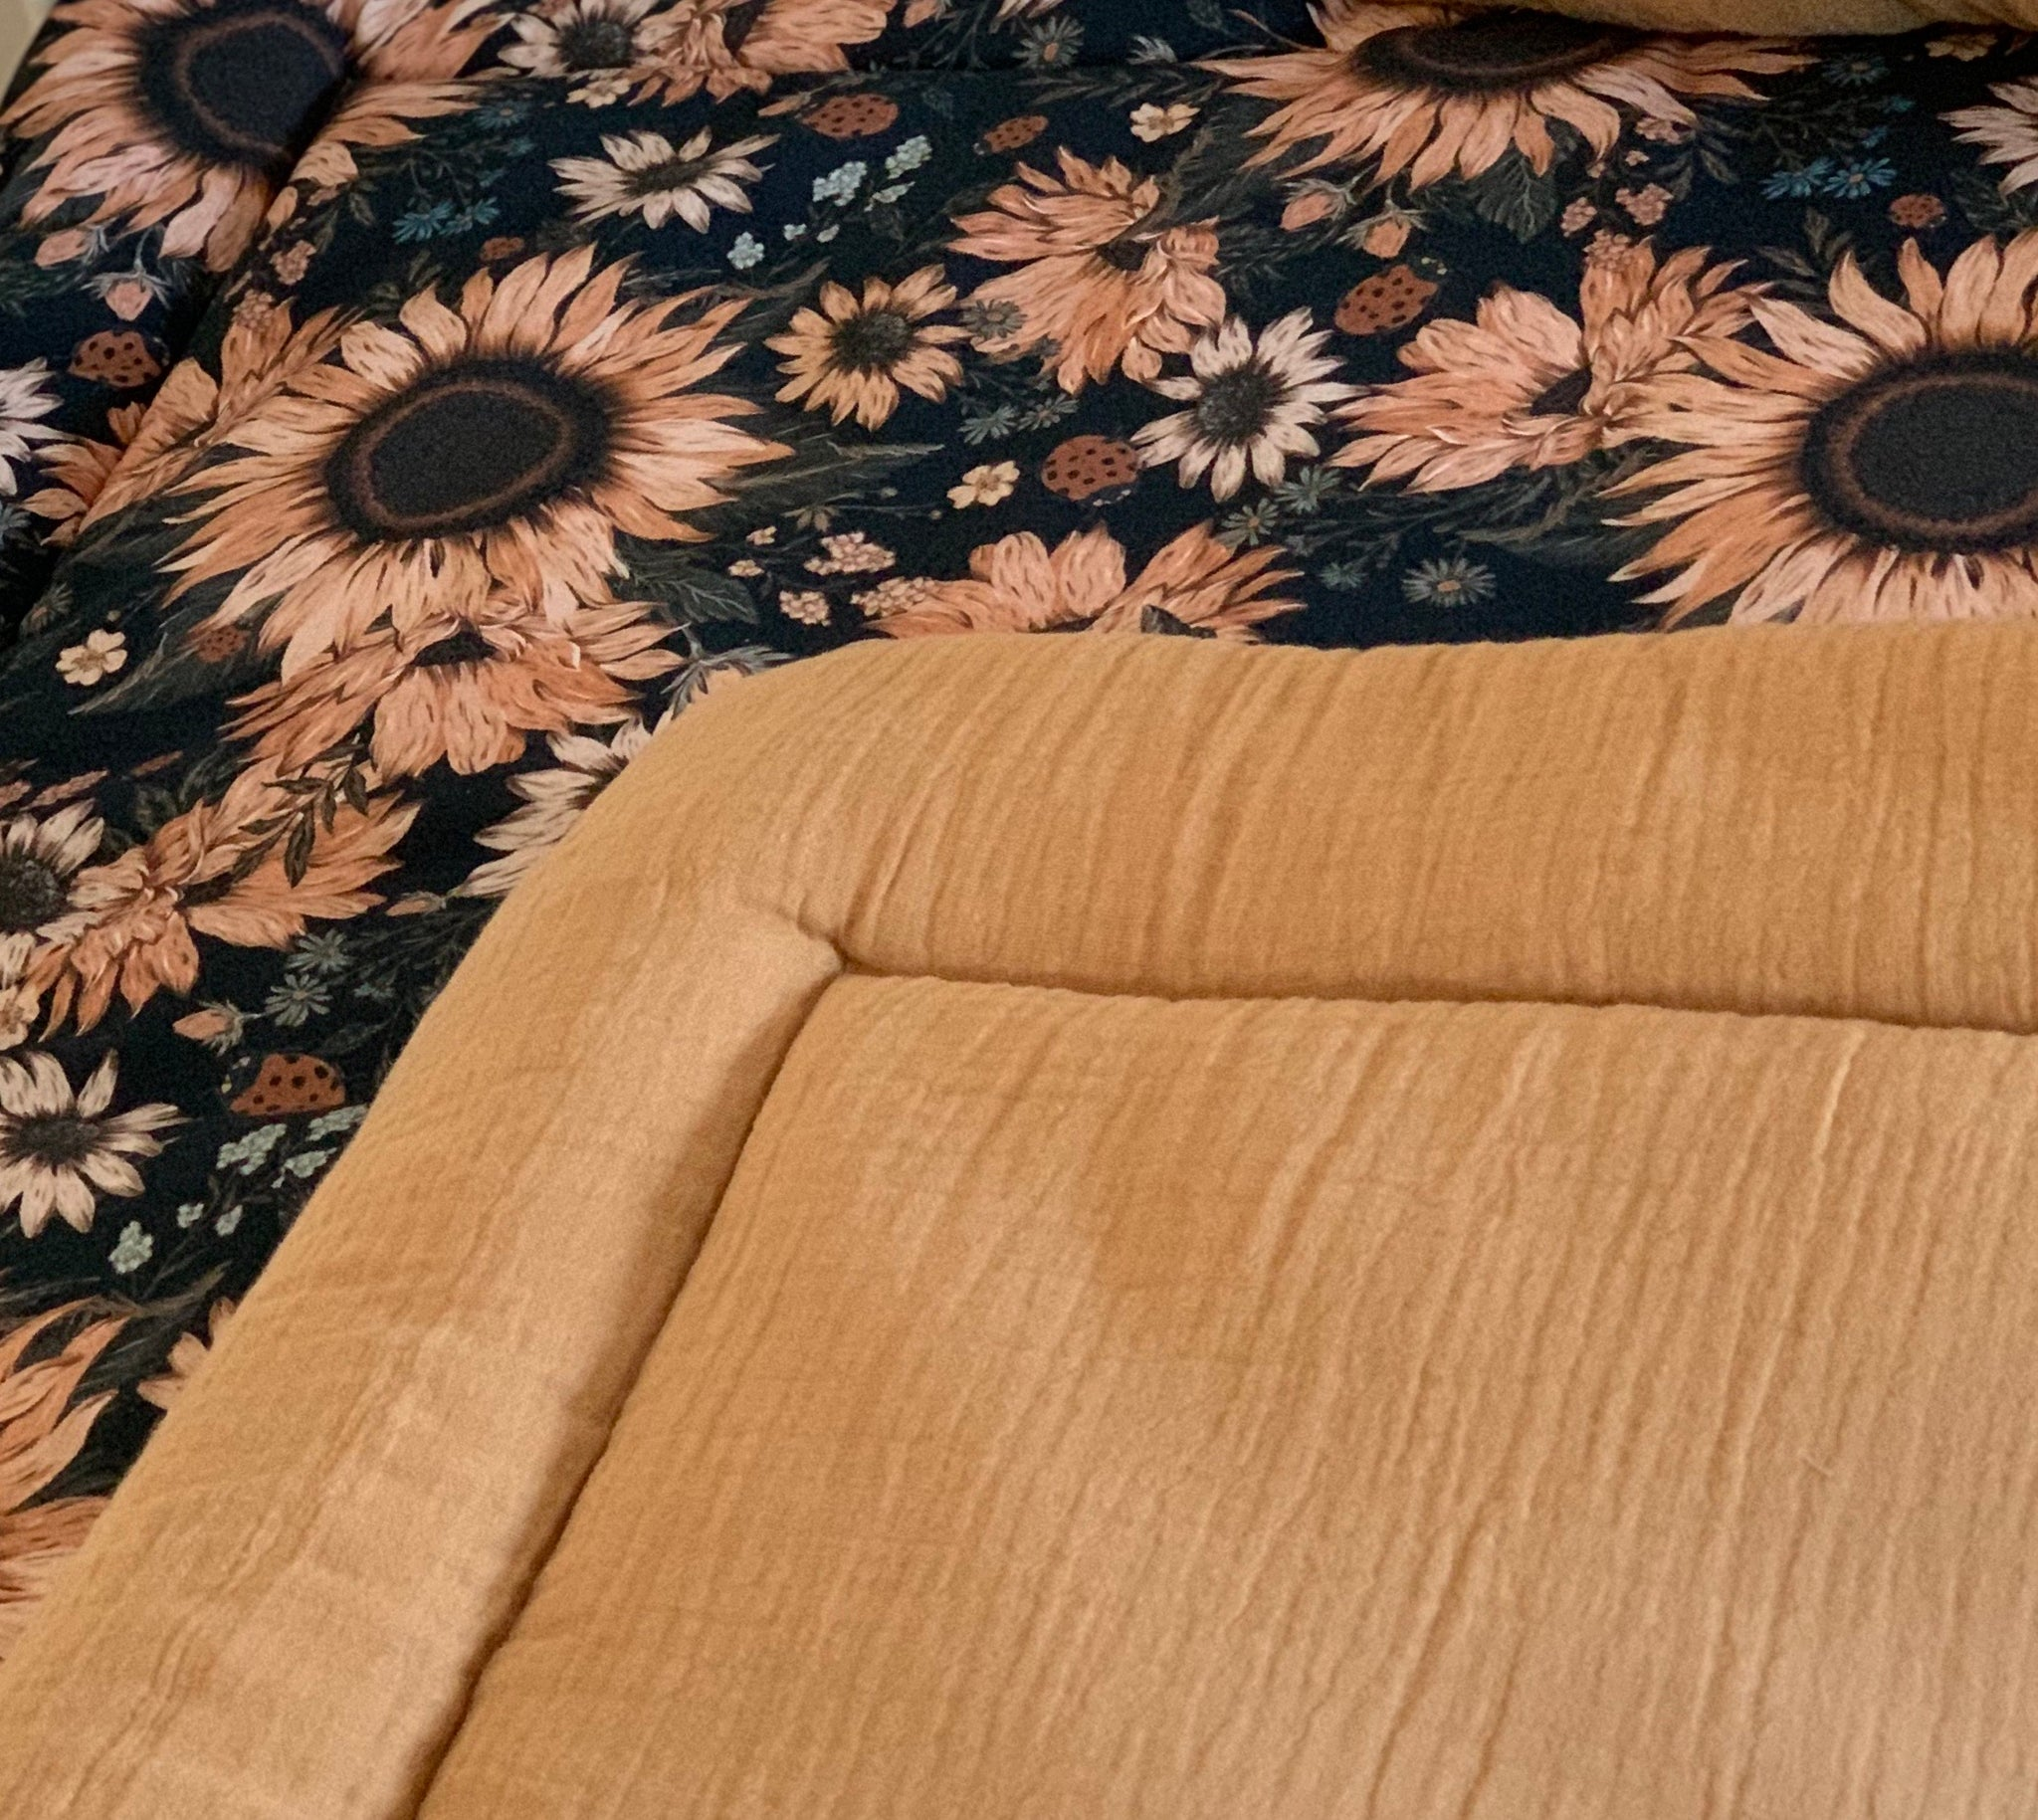 Sunflowers on black & Carmel - box rug (boxkleed), baby play mat,